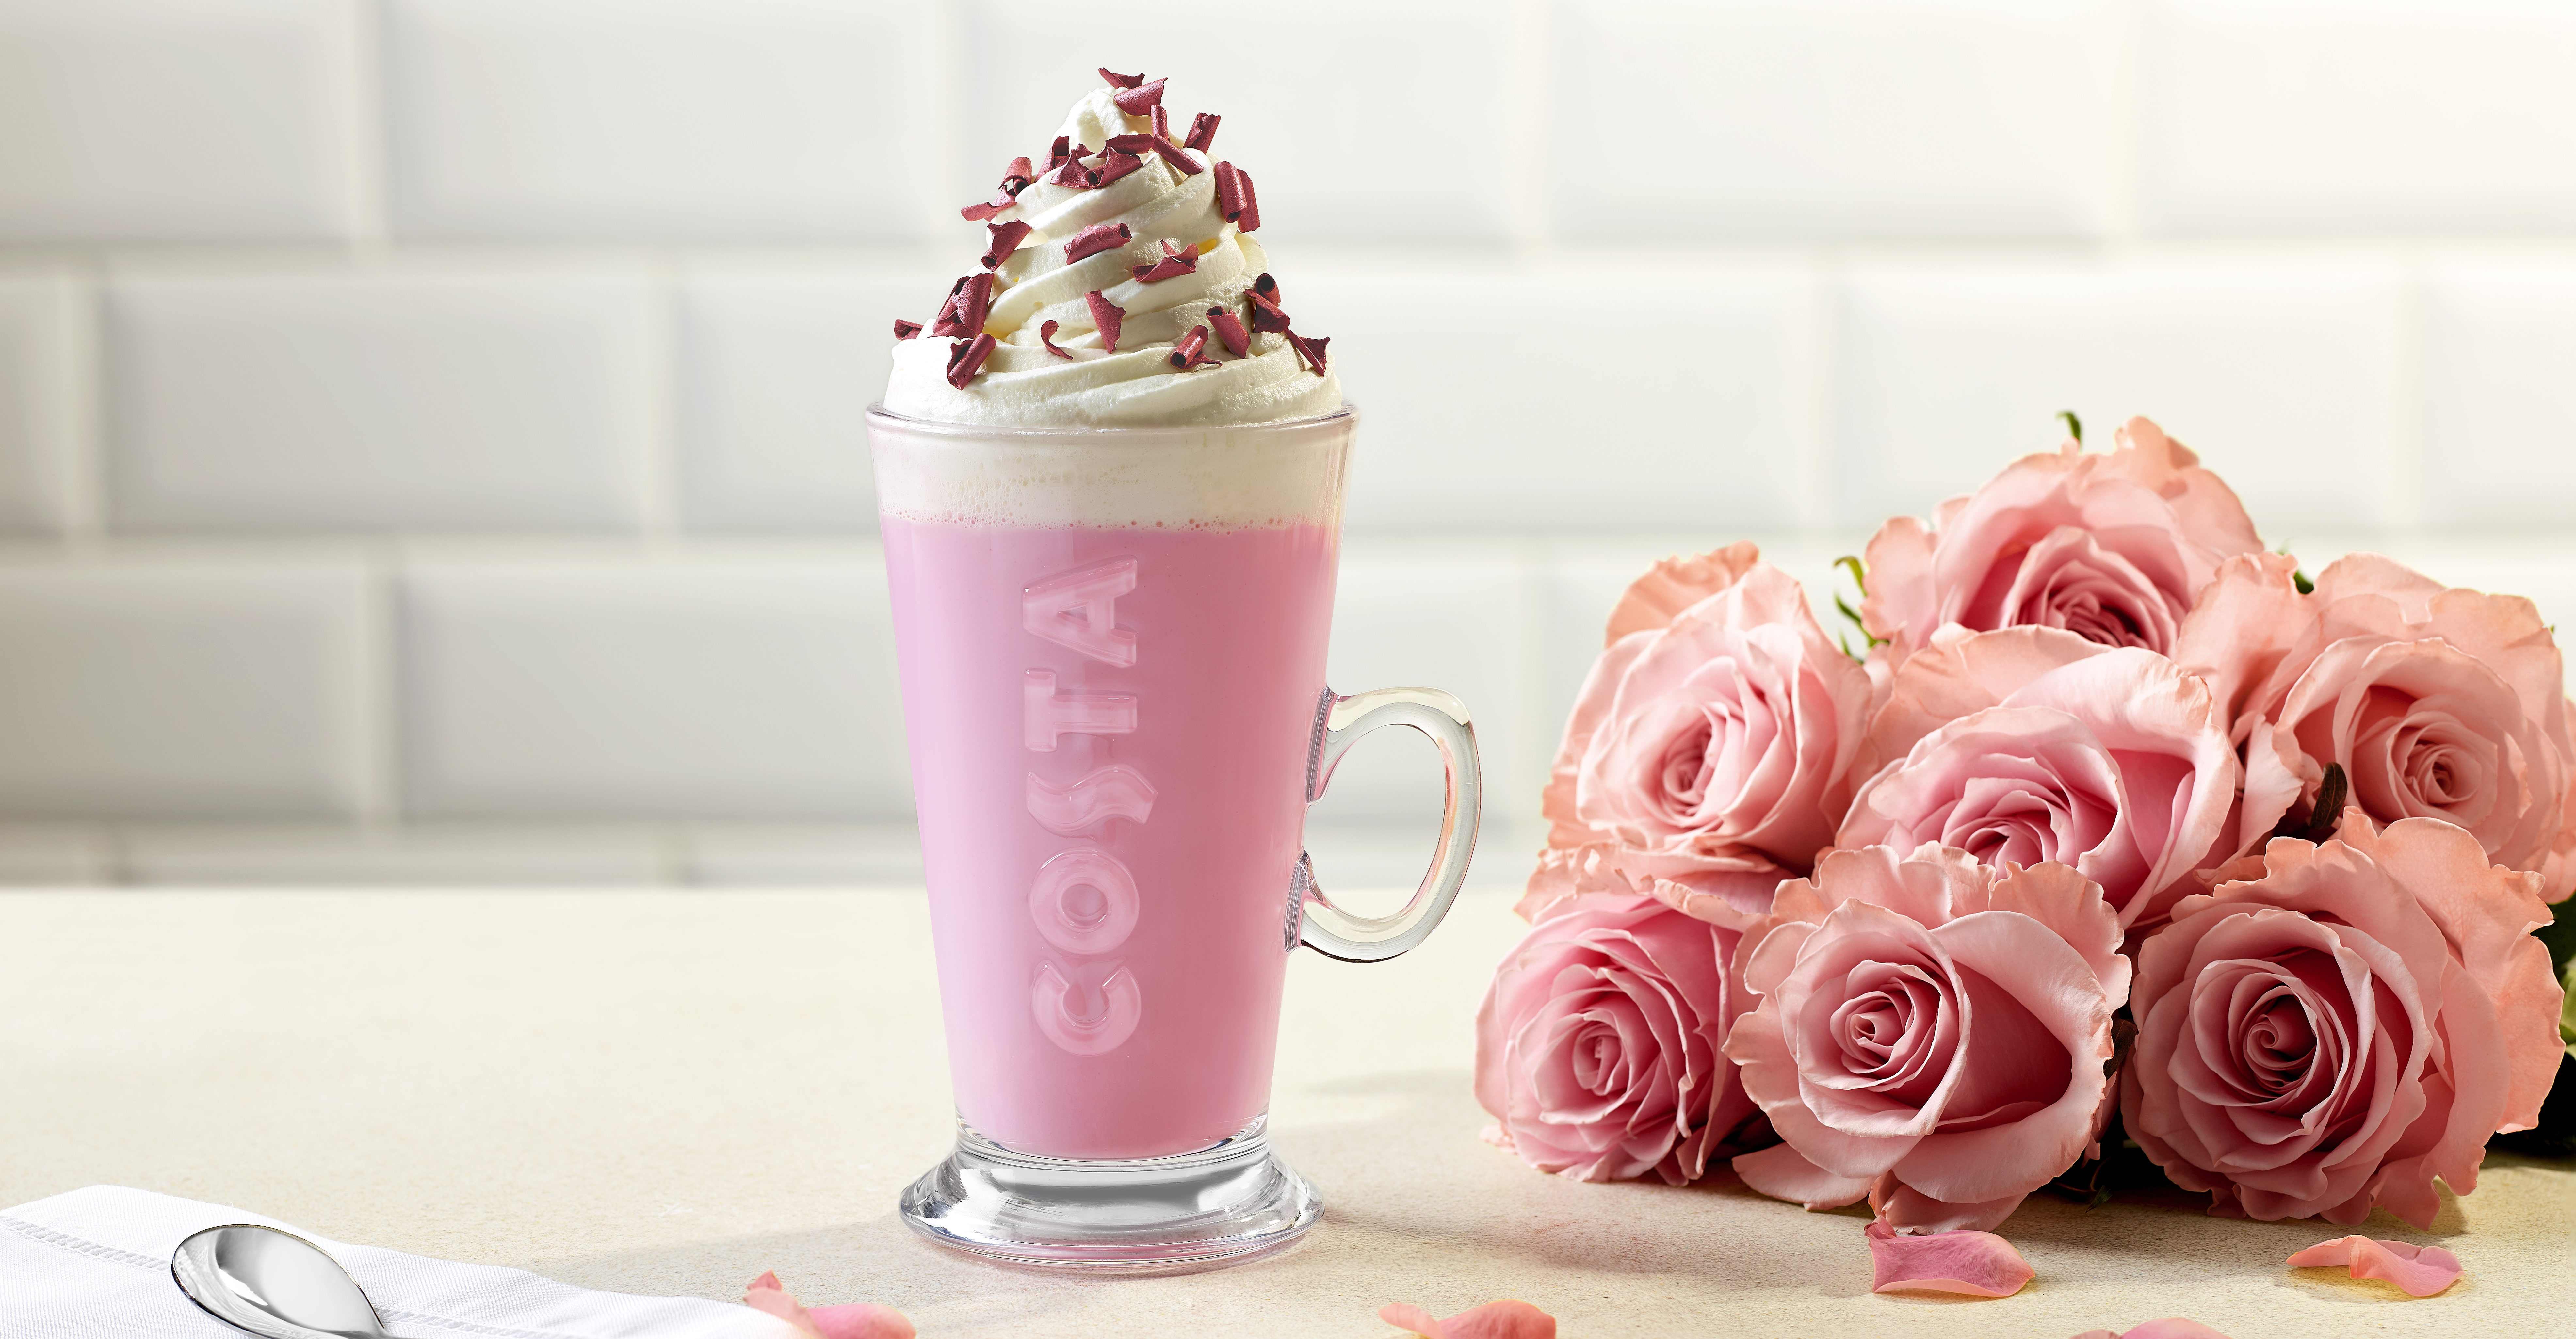 Costa Launches Pink Hot Chocolate As Part Of Its Limited